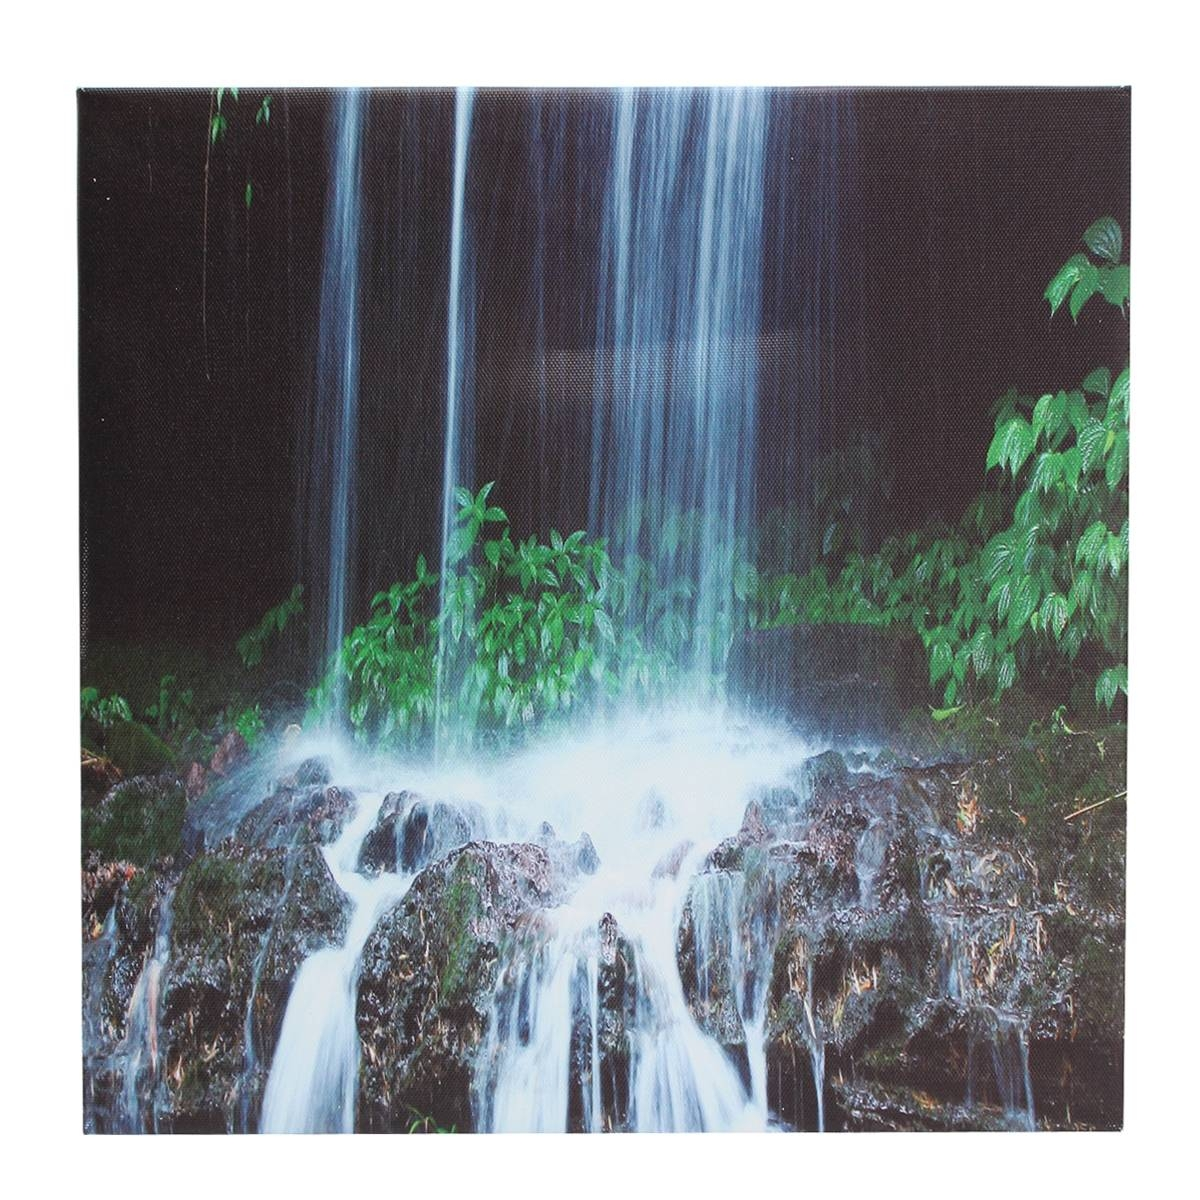 3 Cascade Large Waterfall Framed Print Painting Canvas Wall Art Inside Most Popular Waterfall Wall Art (View 3 of 20)